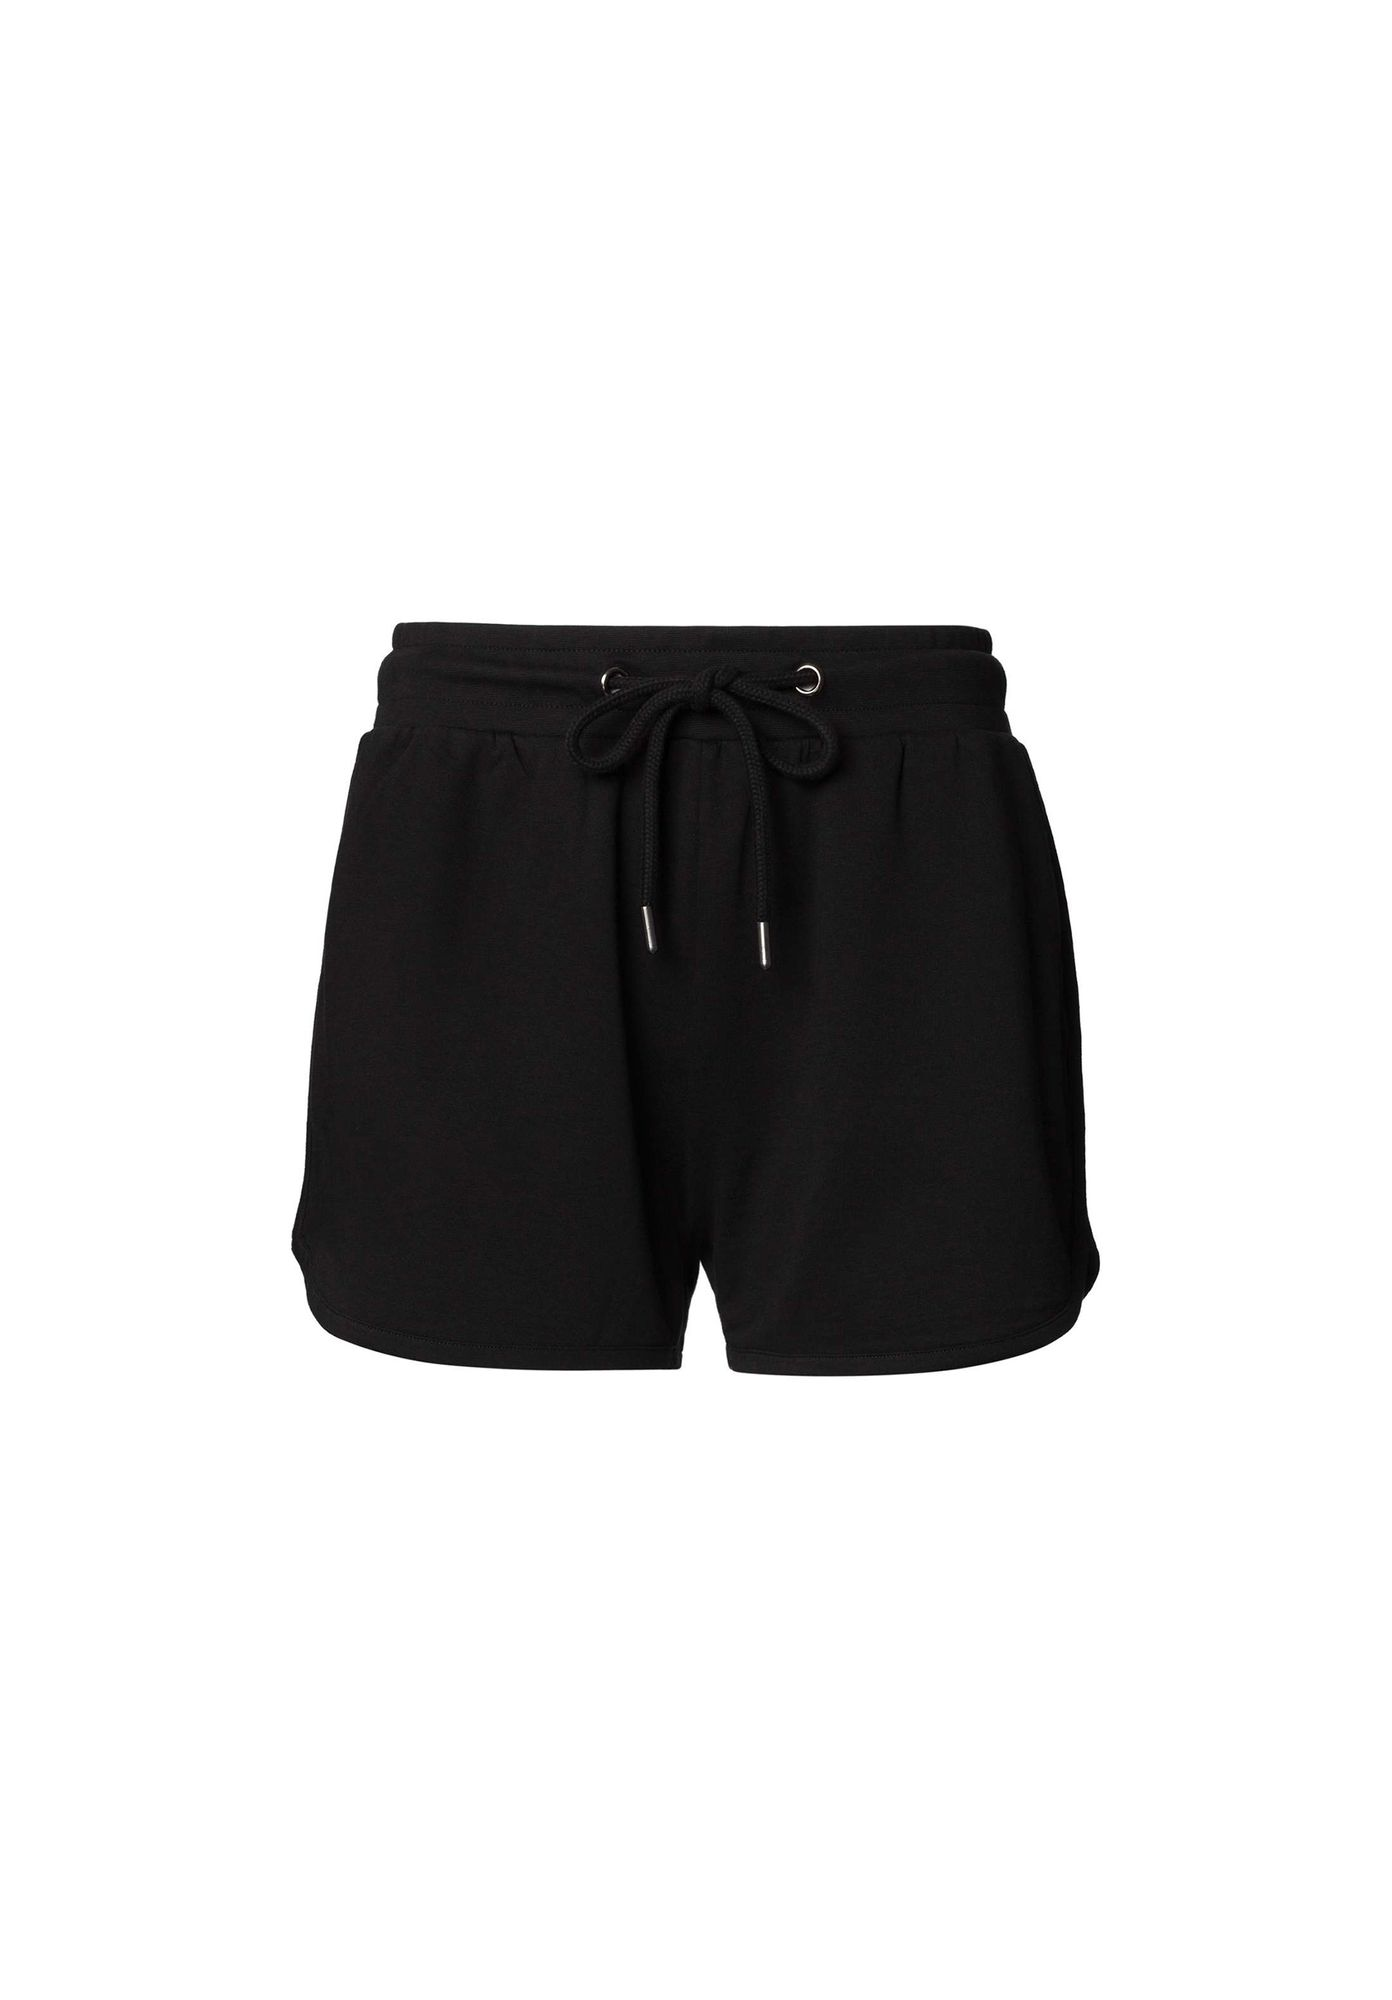 BTD1023 Shorts Woman Black